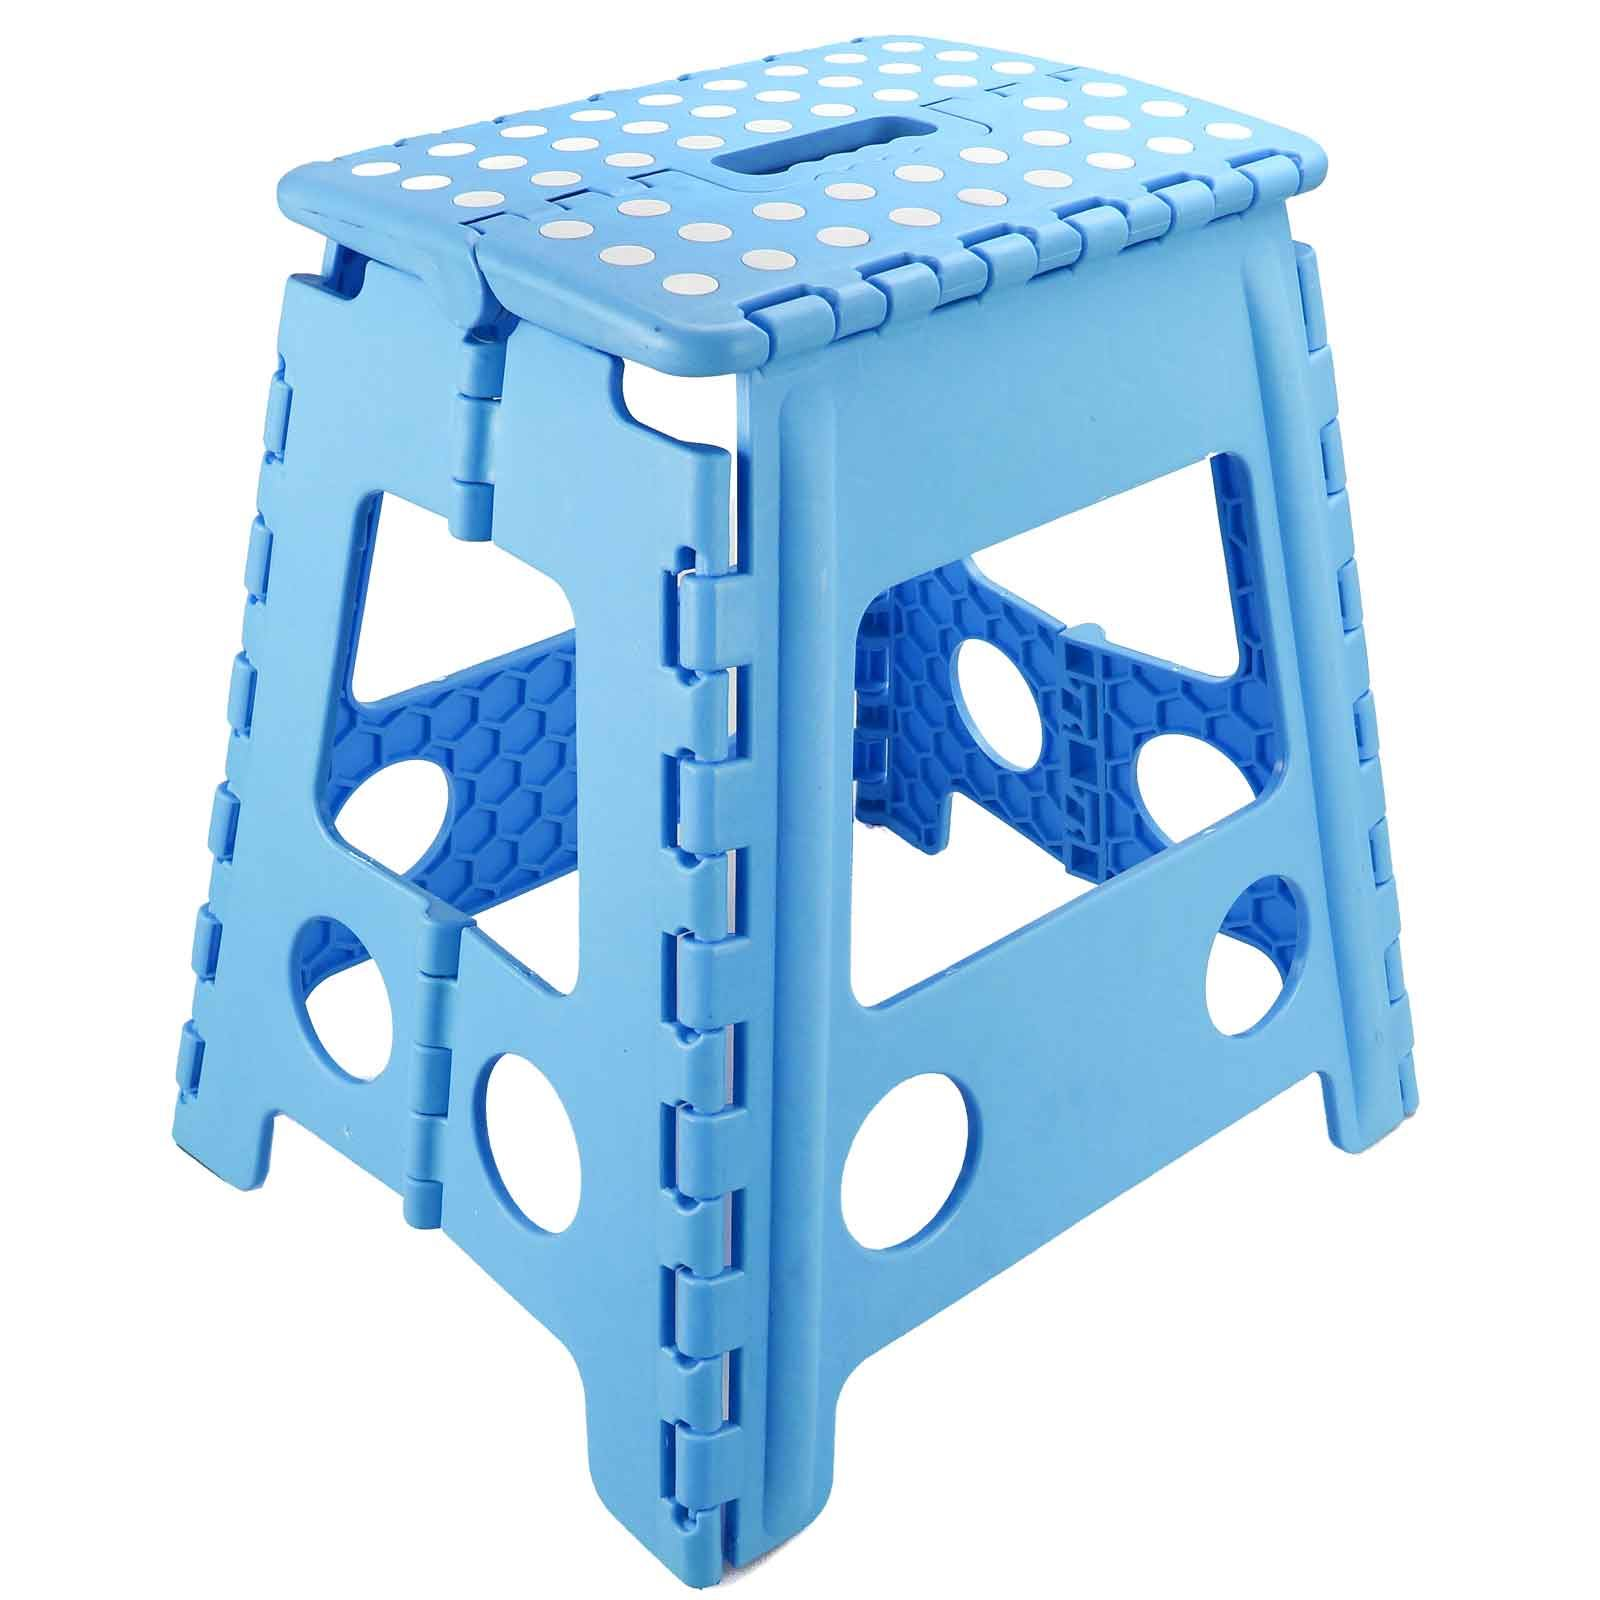 Folding Foot Step Stool Multi Purpose Plastic Foldable